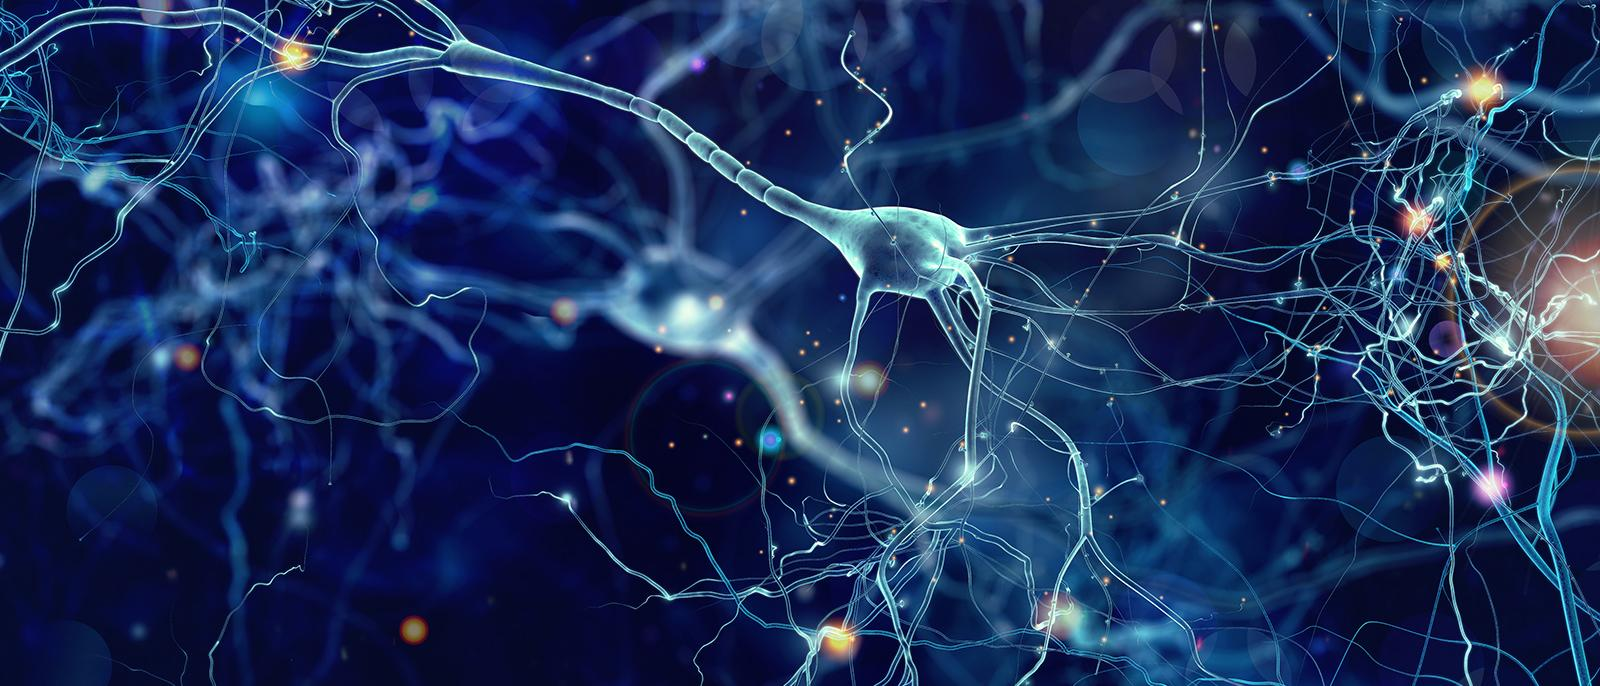 Conceptual illustration of neuron cells with glowing link knots in abstract dark space, high resolution 3D illustration